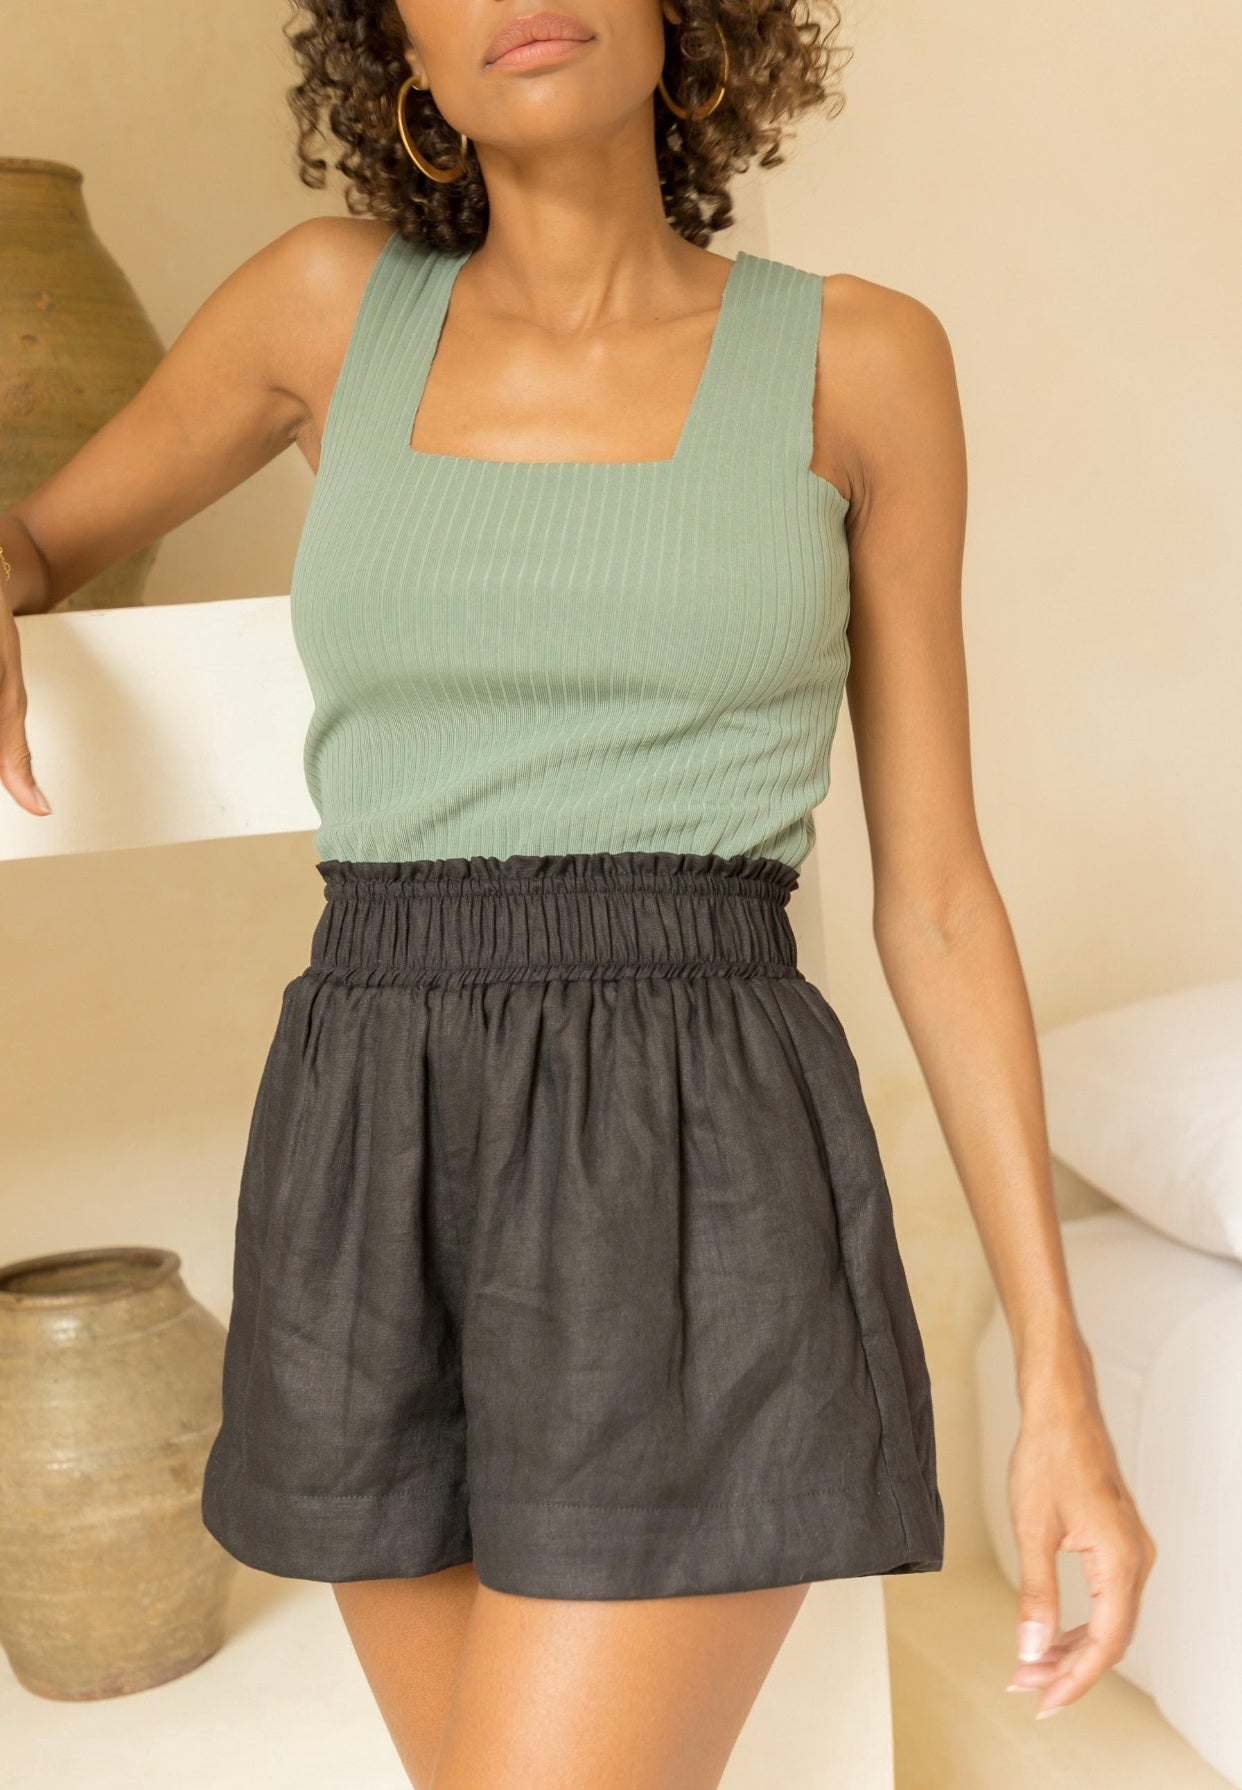 ÉSS THE LABEL Lolita Linen High Waisted Shorts - Black